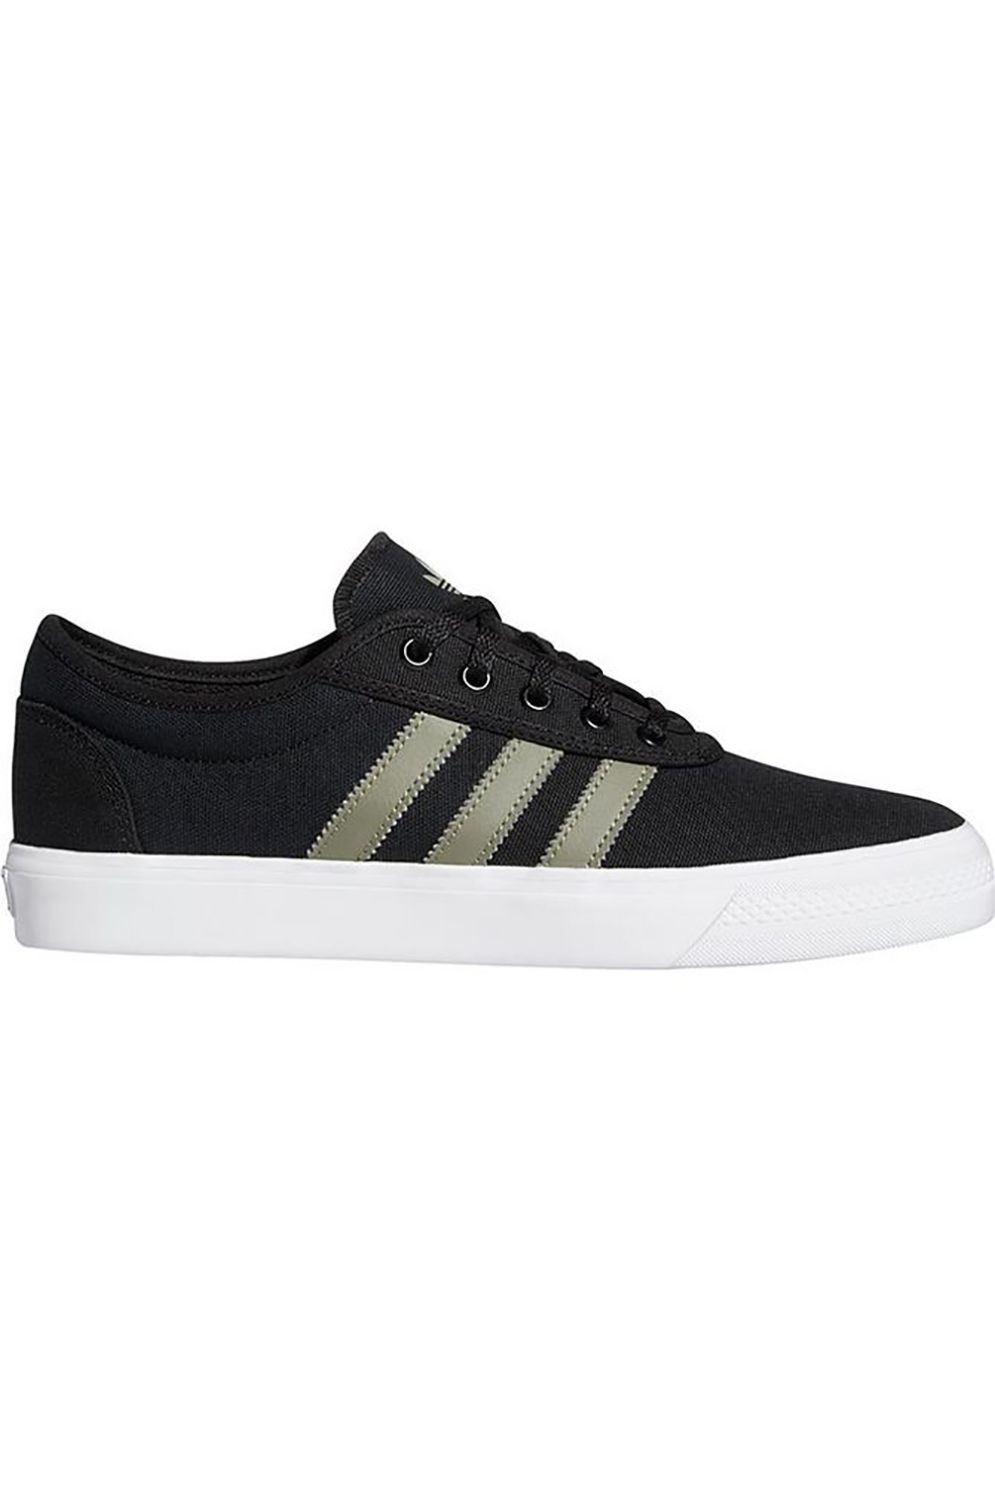 Adidas Shoes ADI-EASE Core Black/Legacy Green/Ftwr White